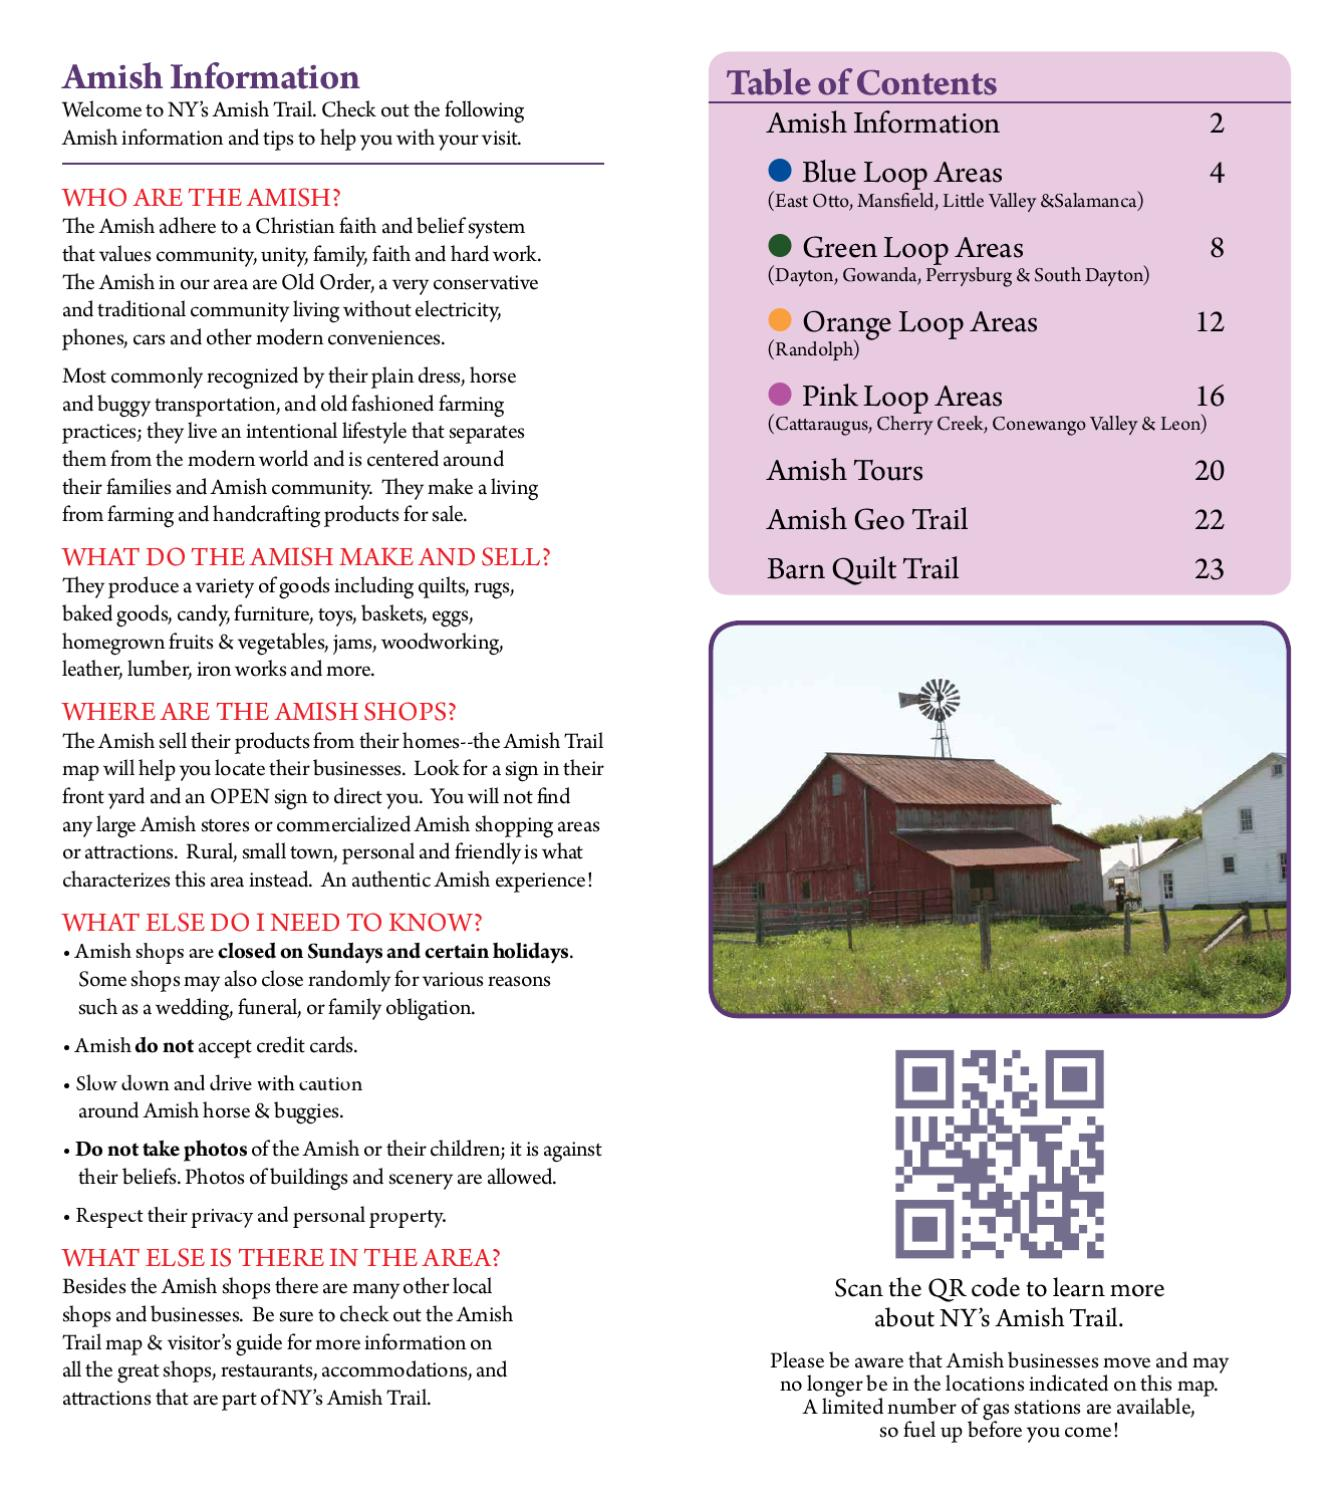 ny s amish trail brochure maps by cattaraugus county issuu amish trail brochure map